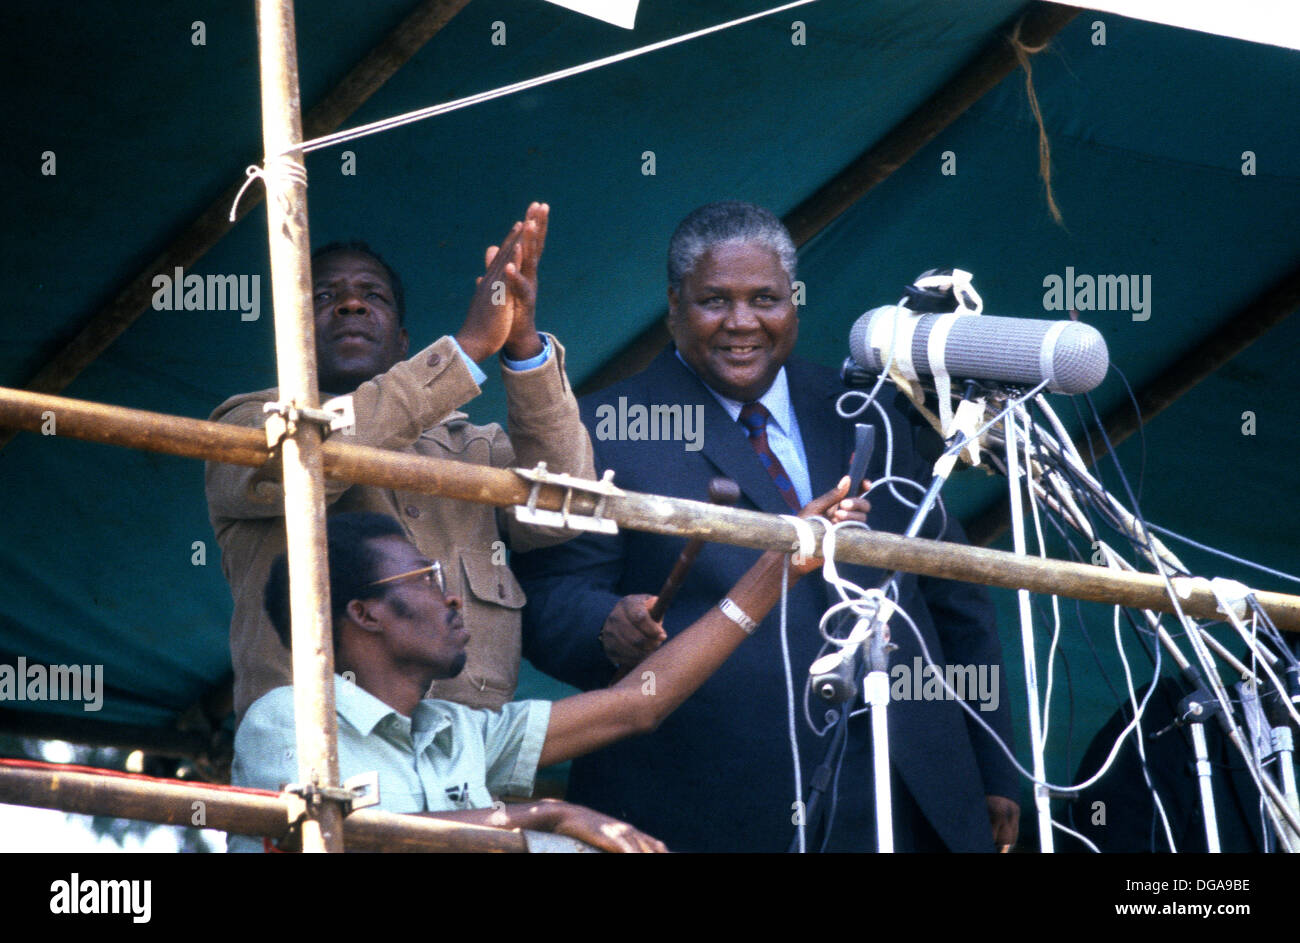 Lancaster house agreement stock photos lancaster house agreement joshua nkomo rhodesia zimbabwe january 1980 joshua nkomo arrives at harare stadium platinumwayz